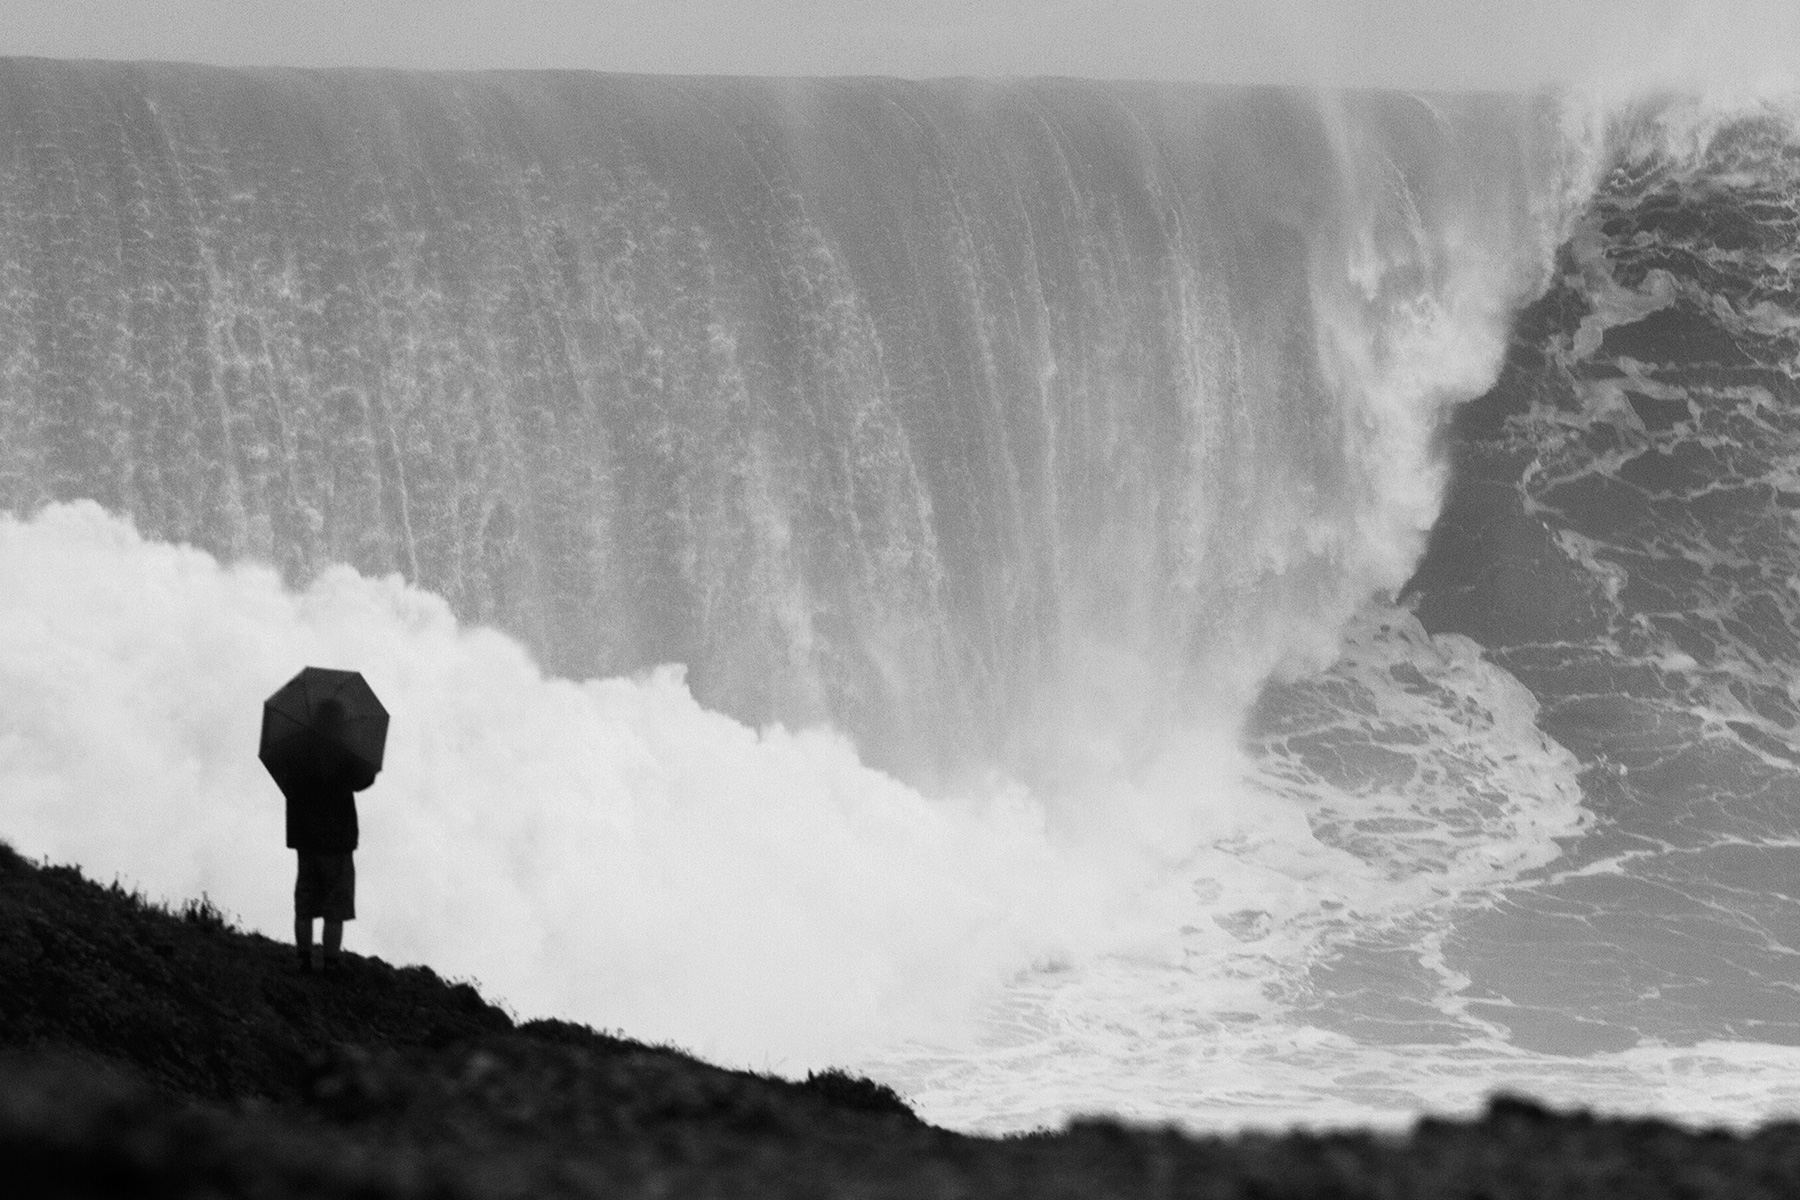 spectator holding an umbrella stood on the cliffs at nazare watching a giant wave break in front of them